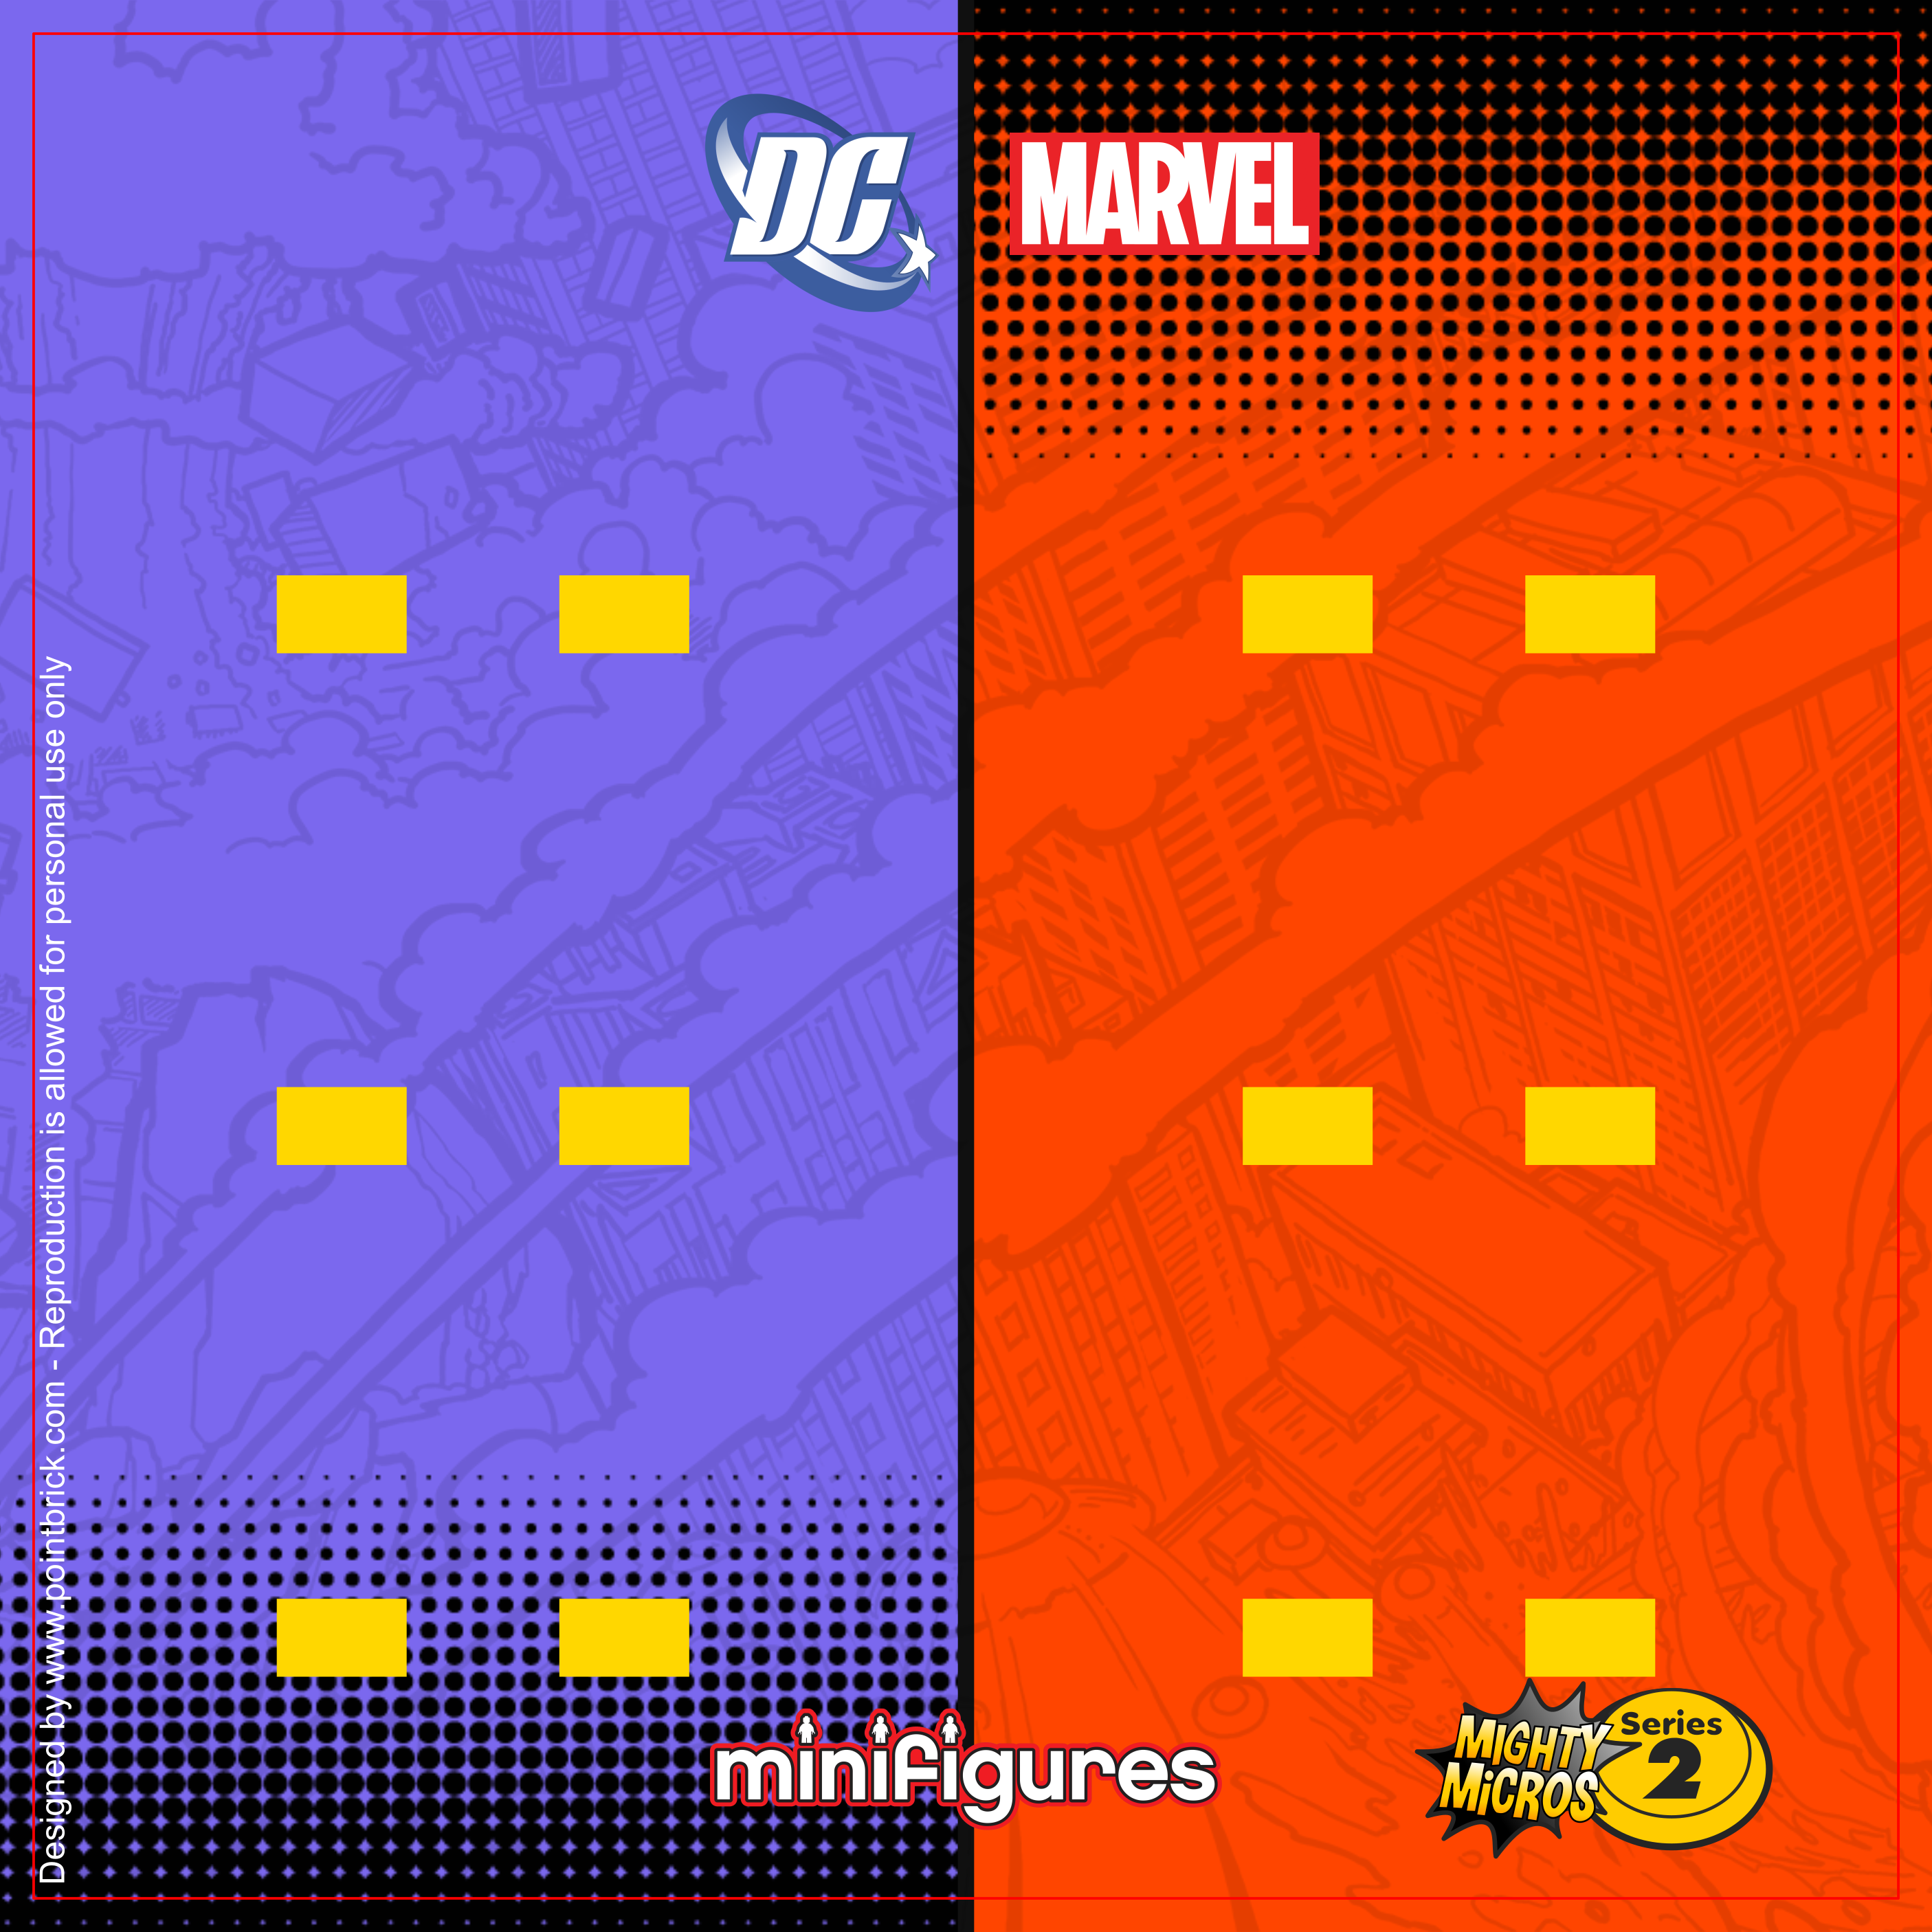 LEGO Minifigures Super Heroes - Series Mighty Micros 2 - Display Frame Background 230mm - Clicca sull'immagine per scaricarla gratuitamente!